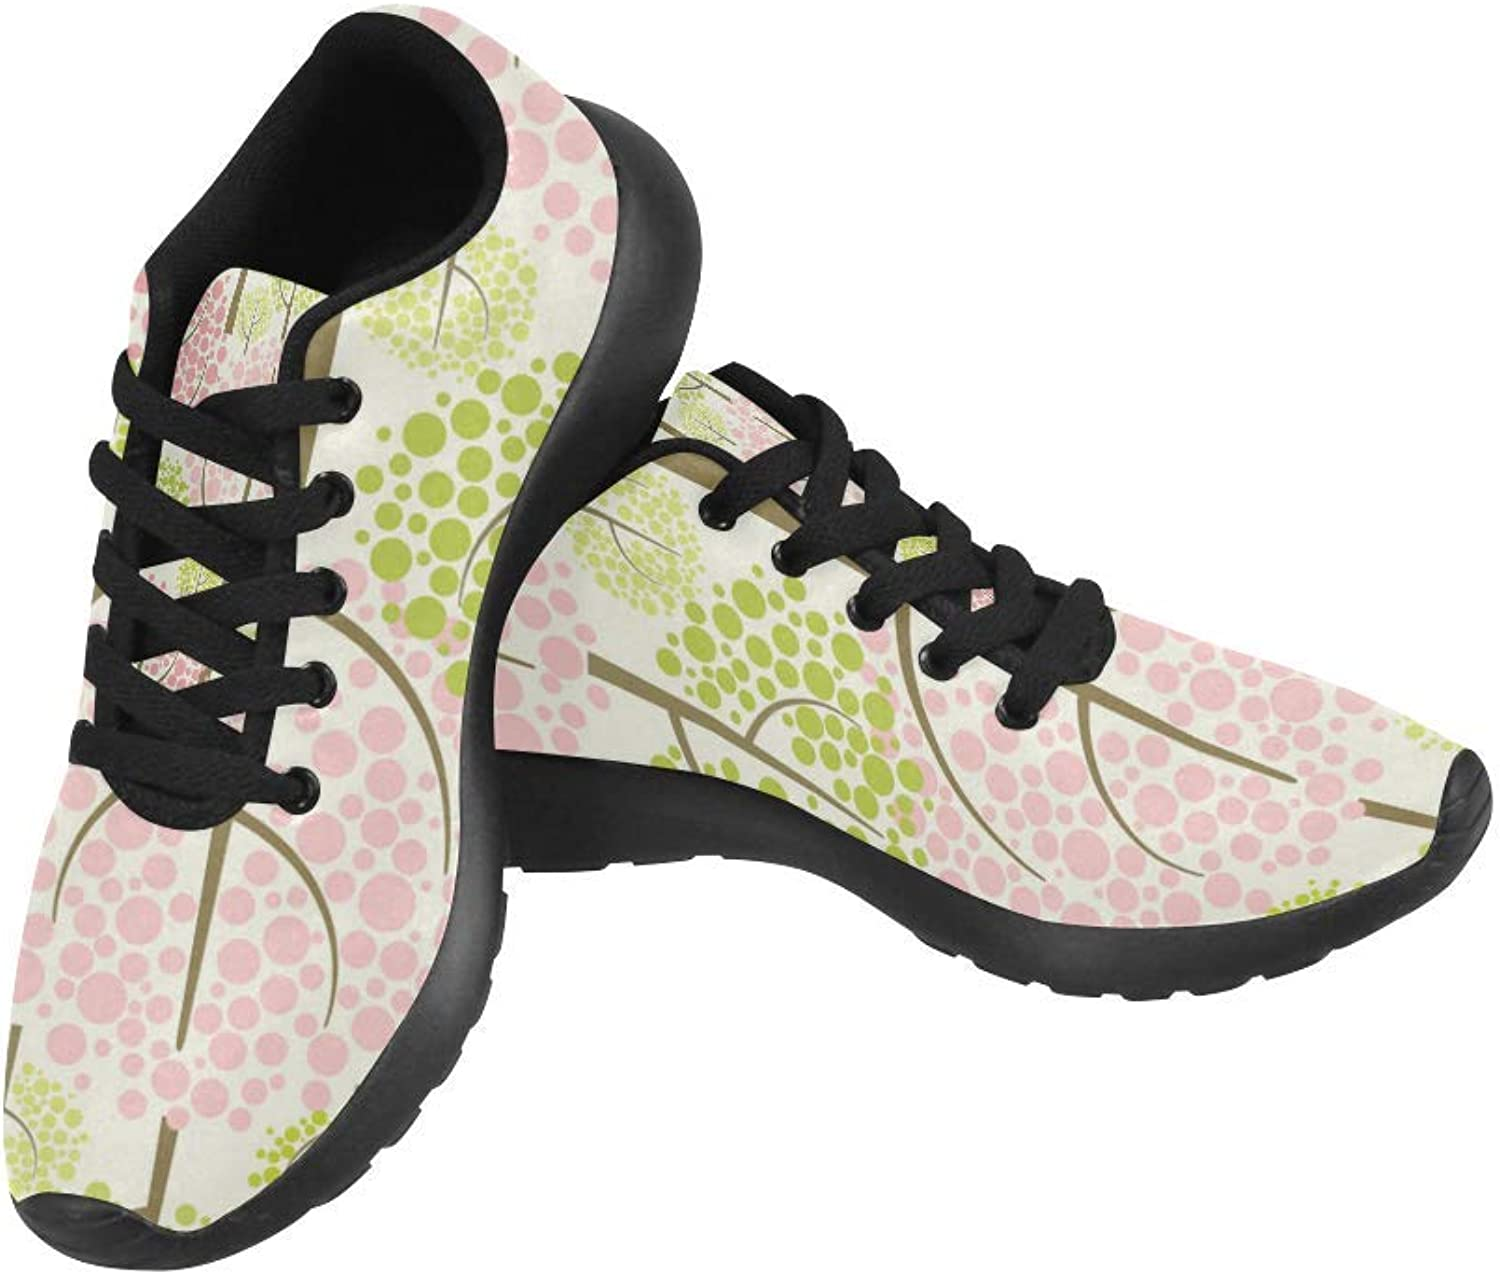 InterestPrint Spring Forest Pattern Print on Women's Running shoes Casual Lightweight Athletic Sneakers US Size 6-15